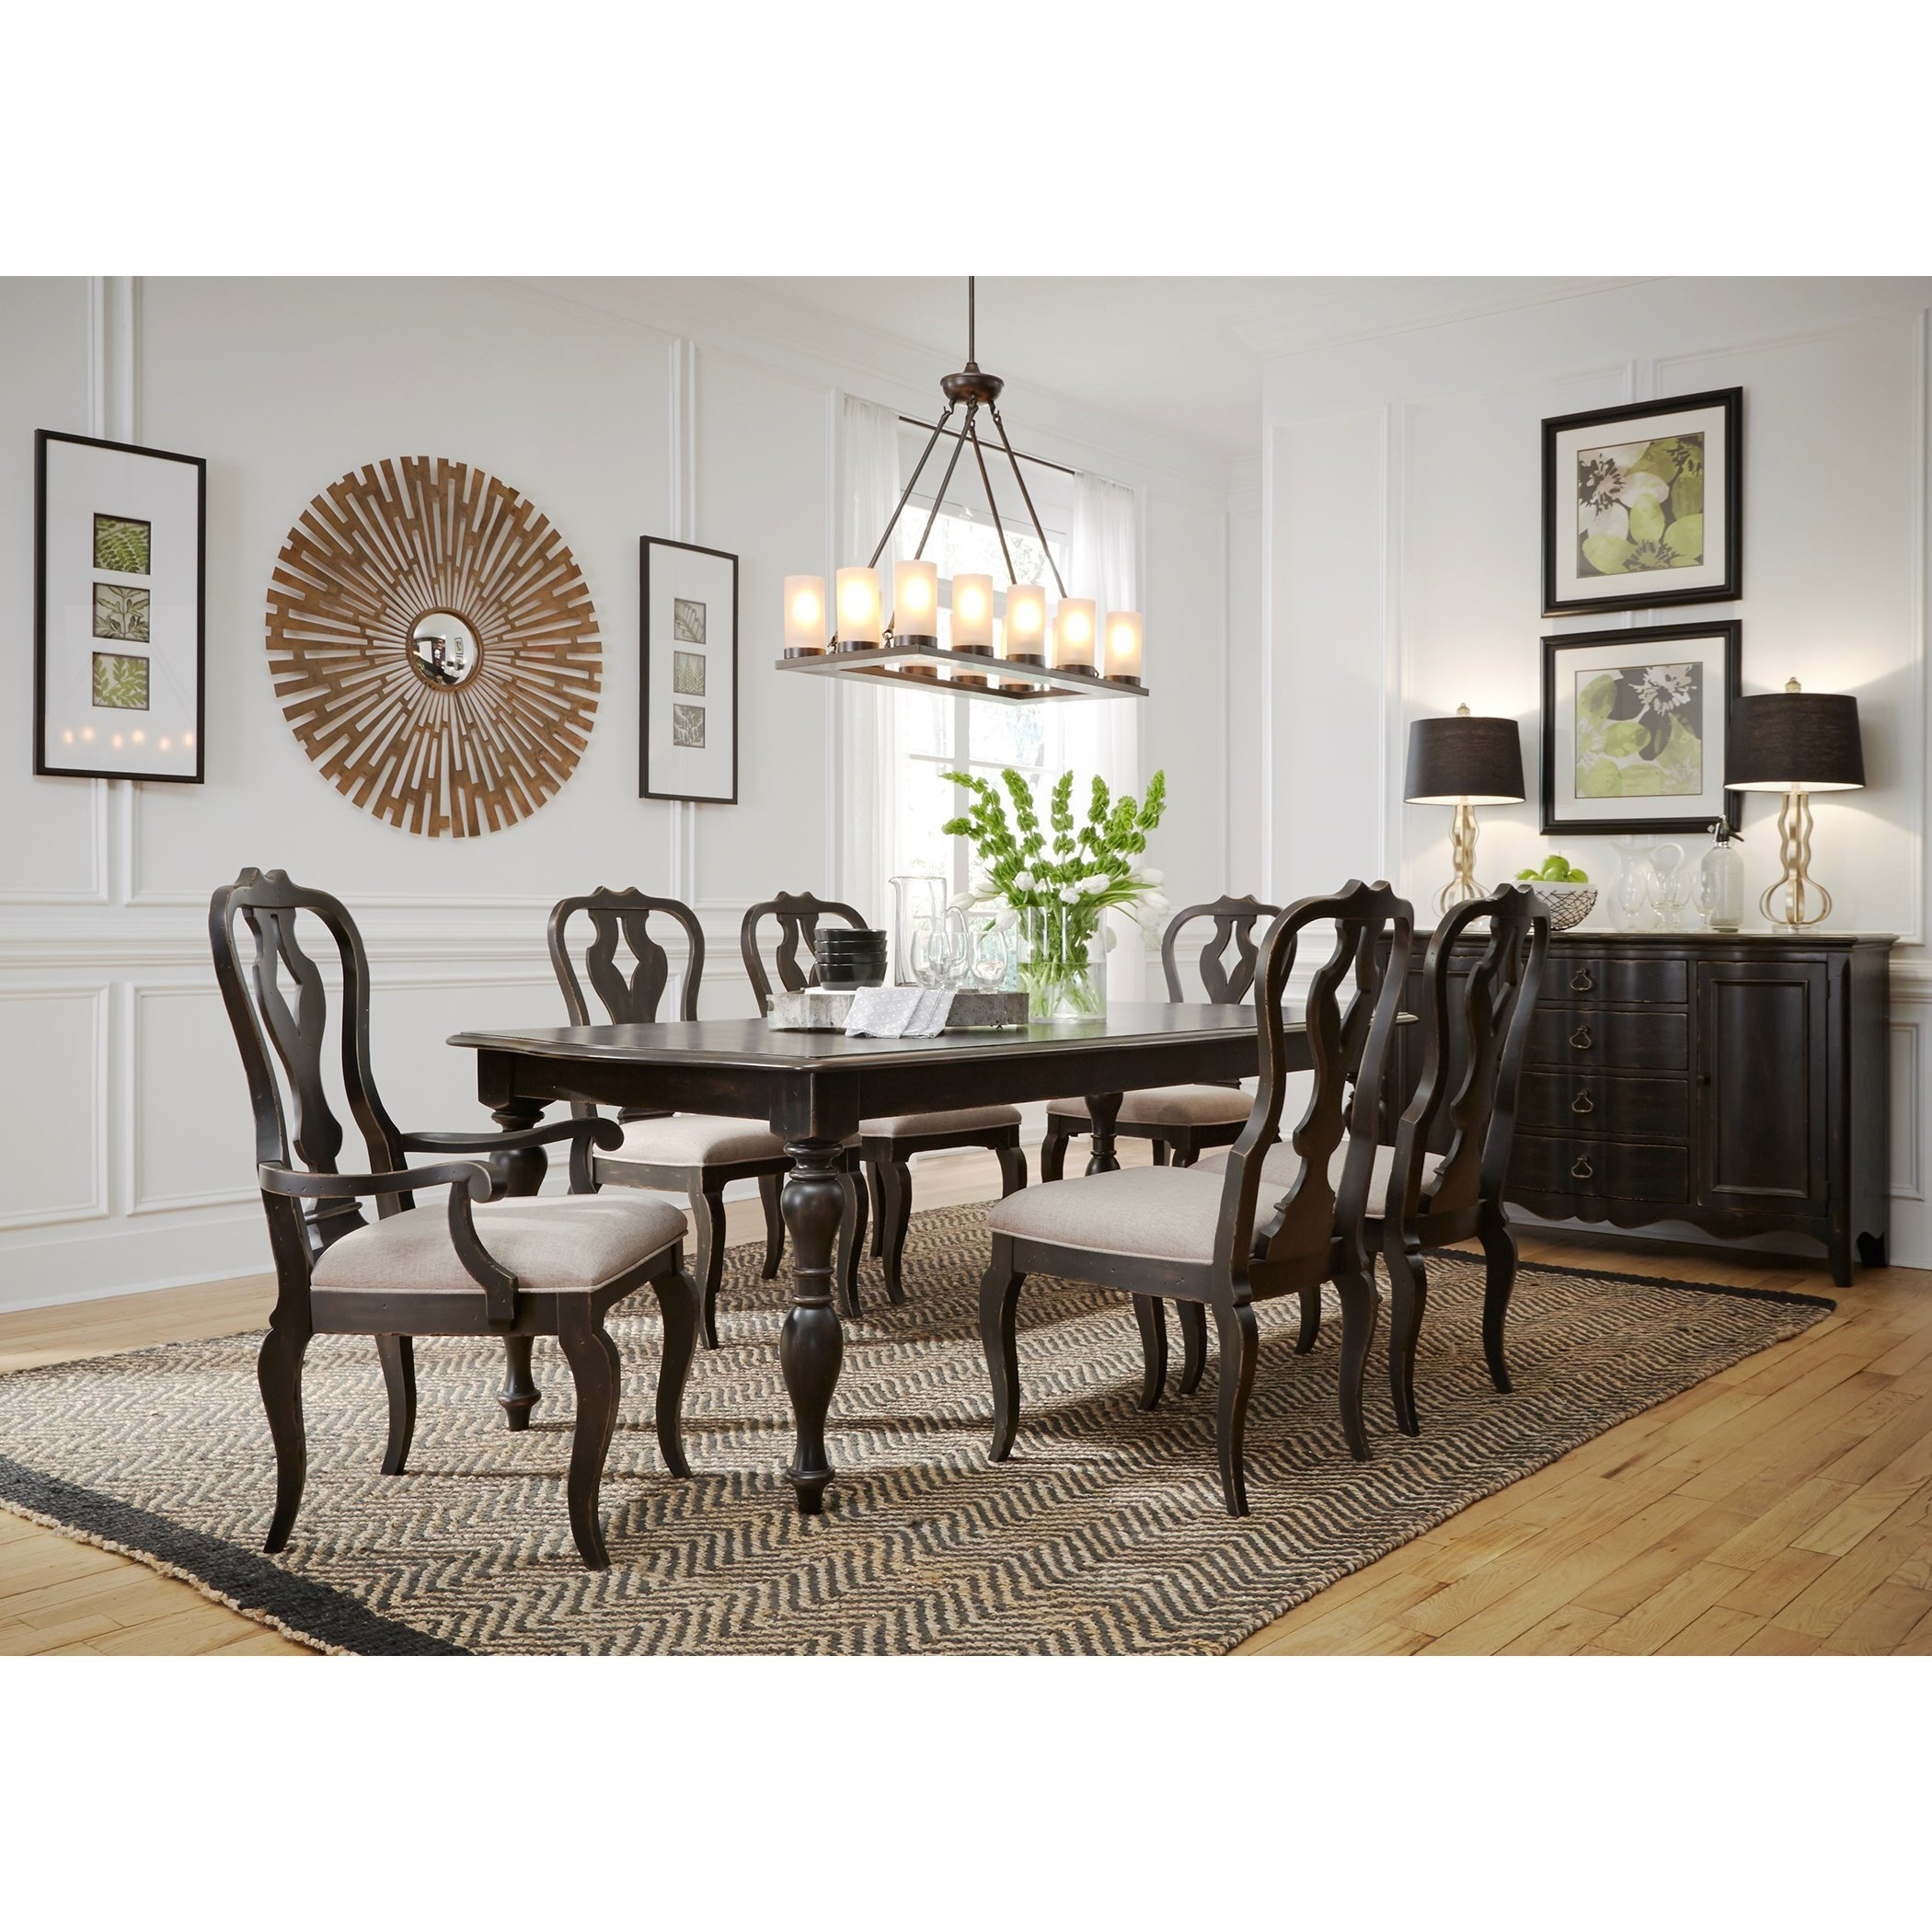 Relaxed Vintage Table and Chair Set